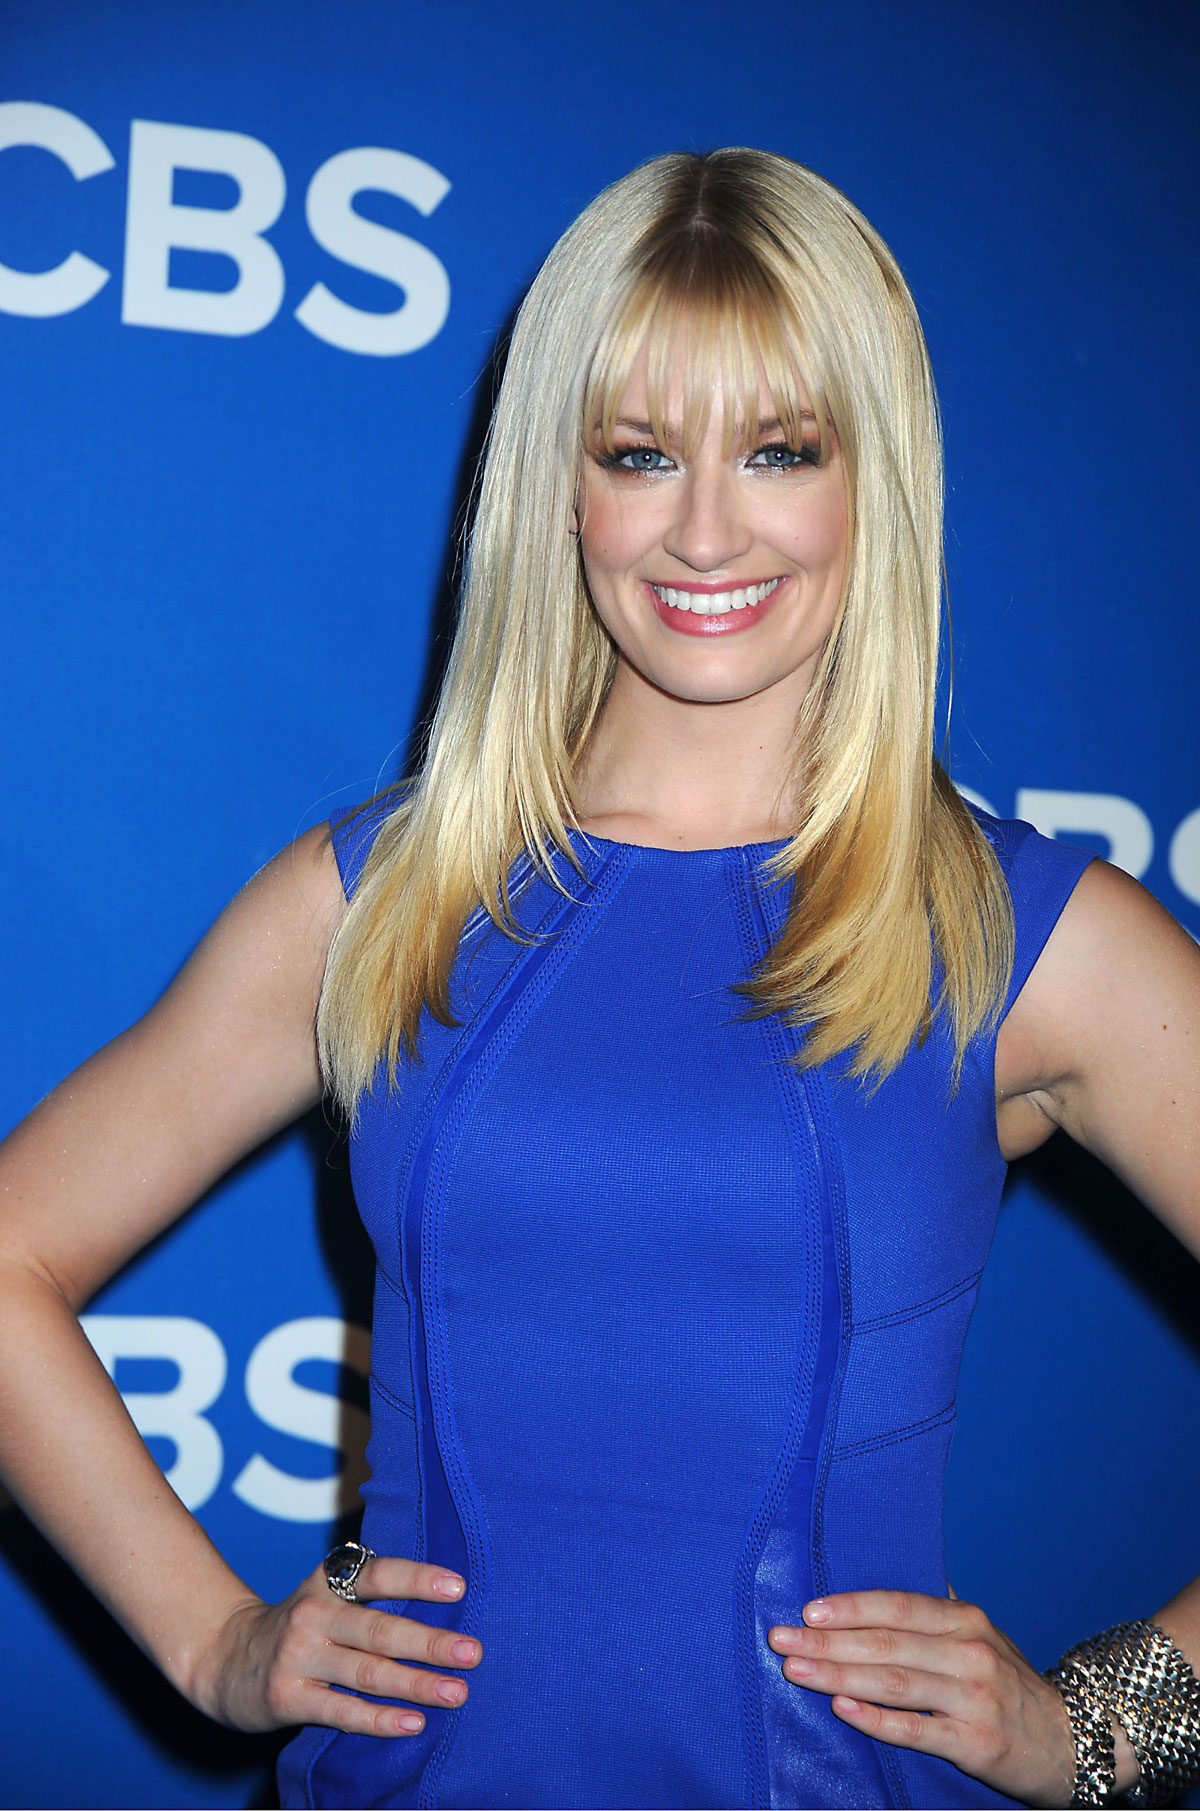 Beth Behrs Beth Behrs Archives Page 5 of 5 HawtCelebs HawtCelebs